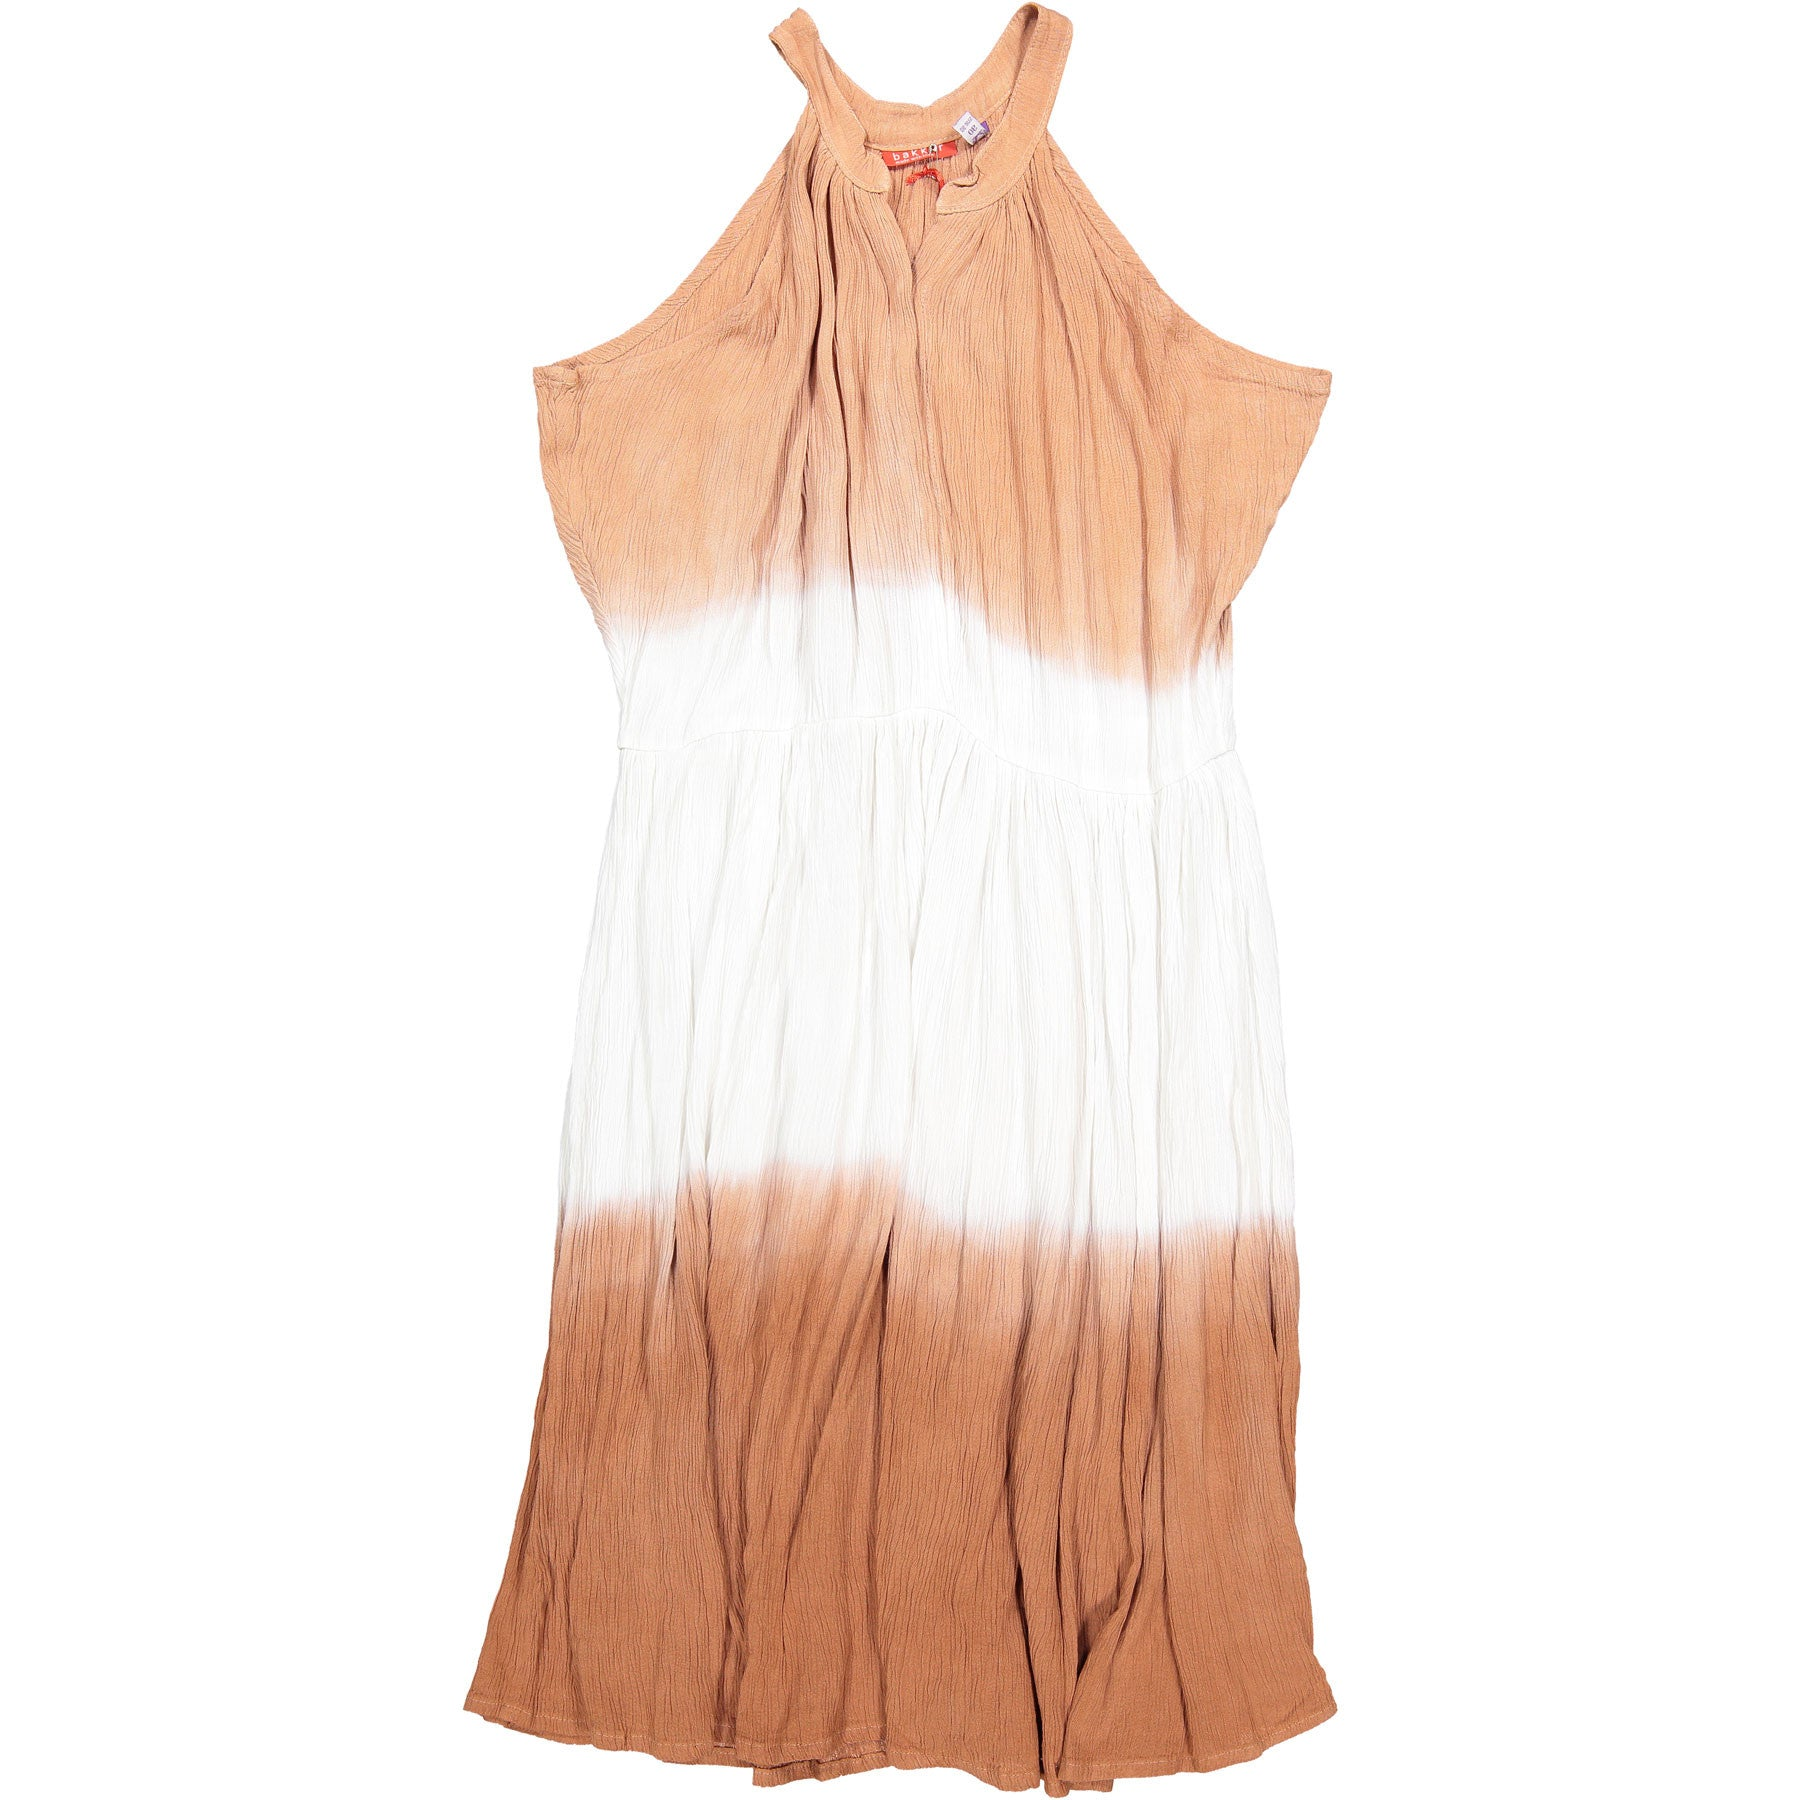 Bakker Rose Tie Dye Maxi Dress